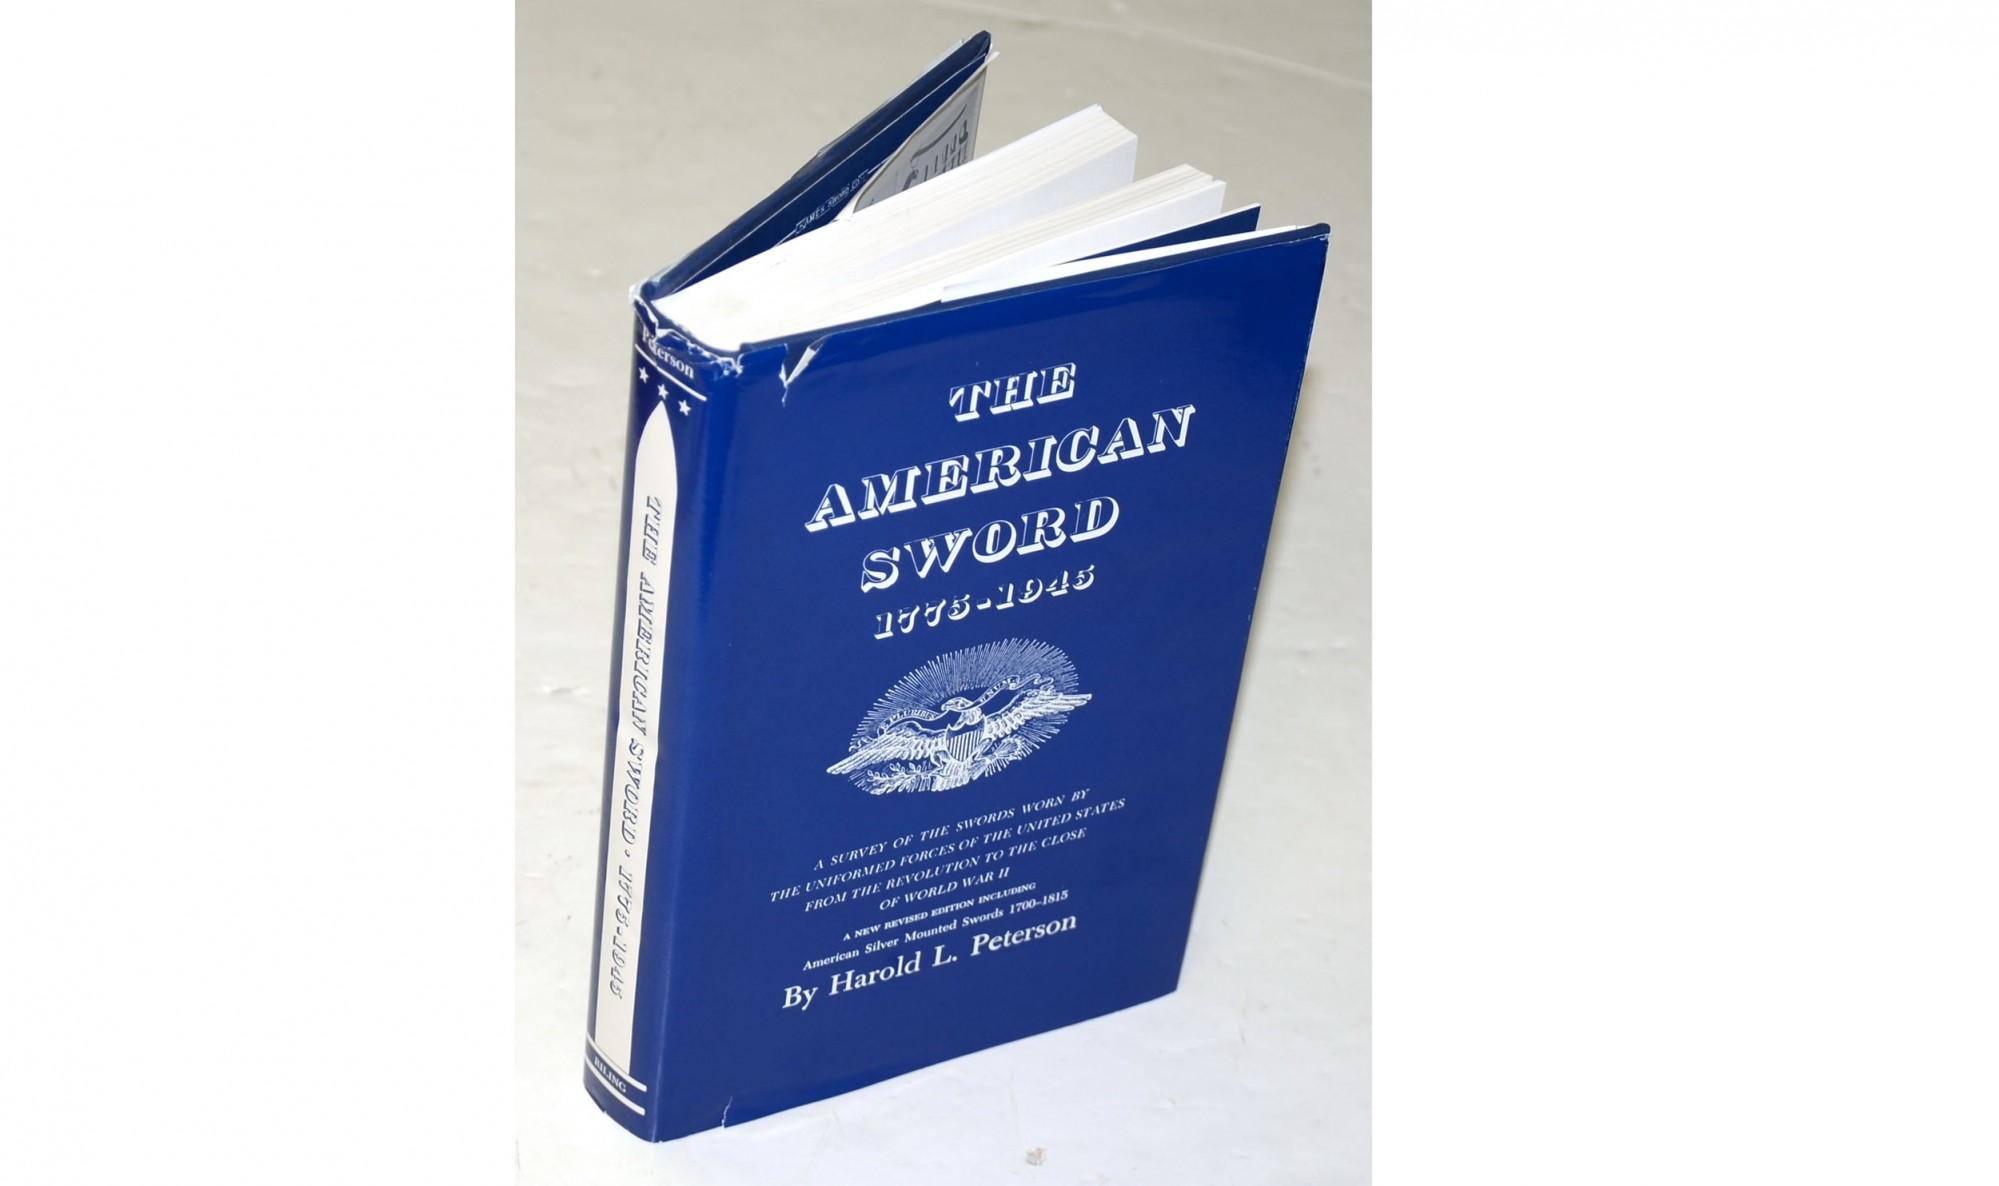 <I>THE AMERICAN SWORD 1775 – 1945</I> BY HAROLD L. PETERSON